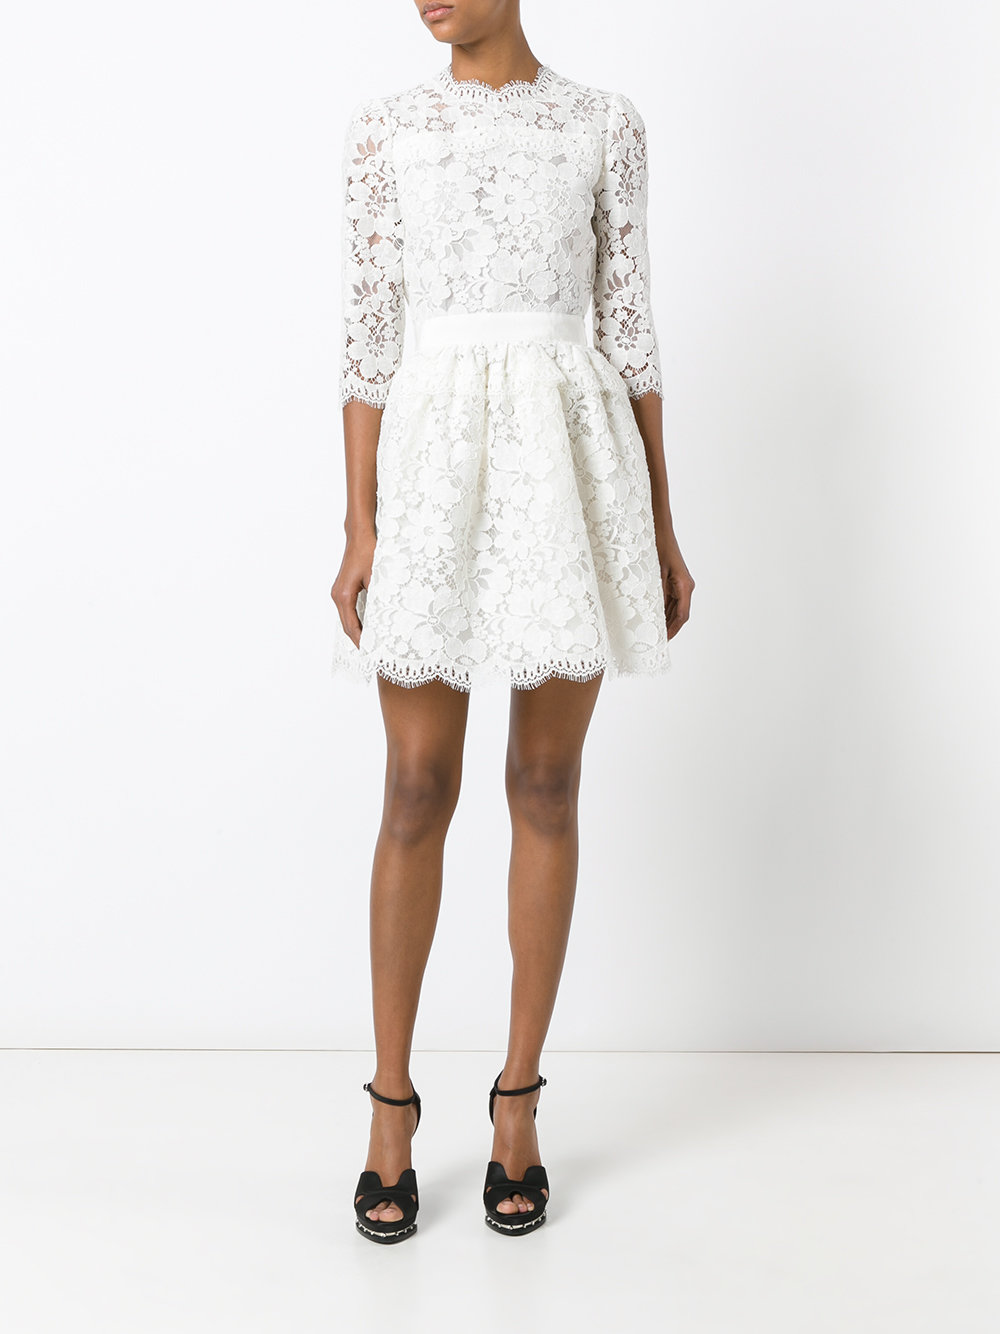 White Alexander McQueen dress